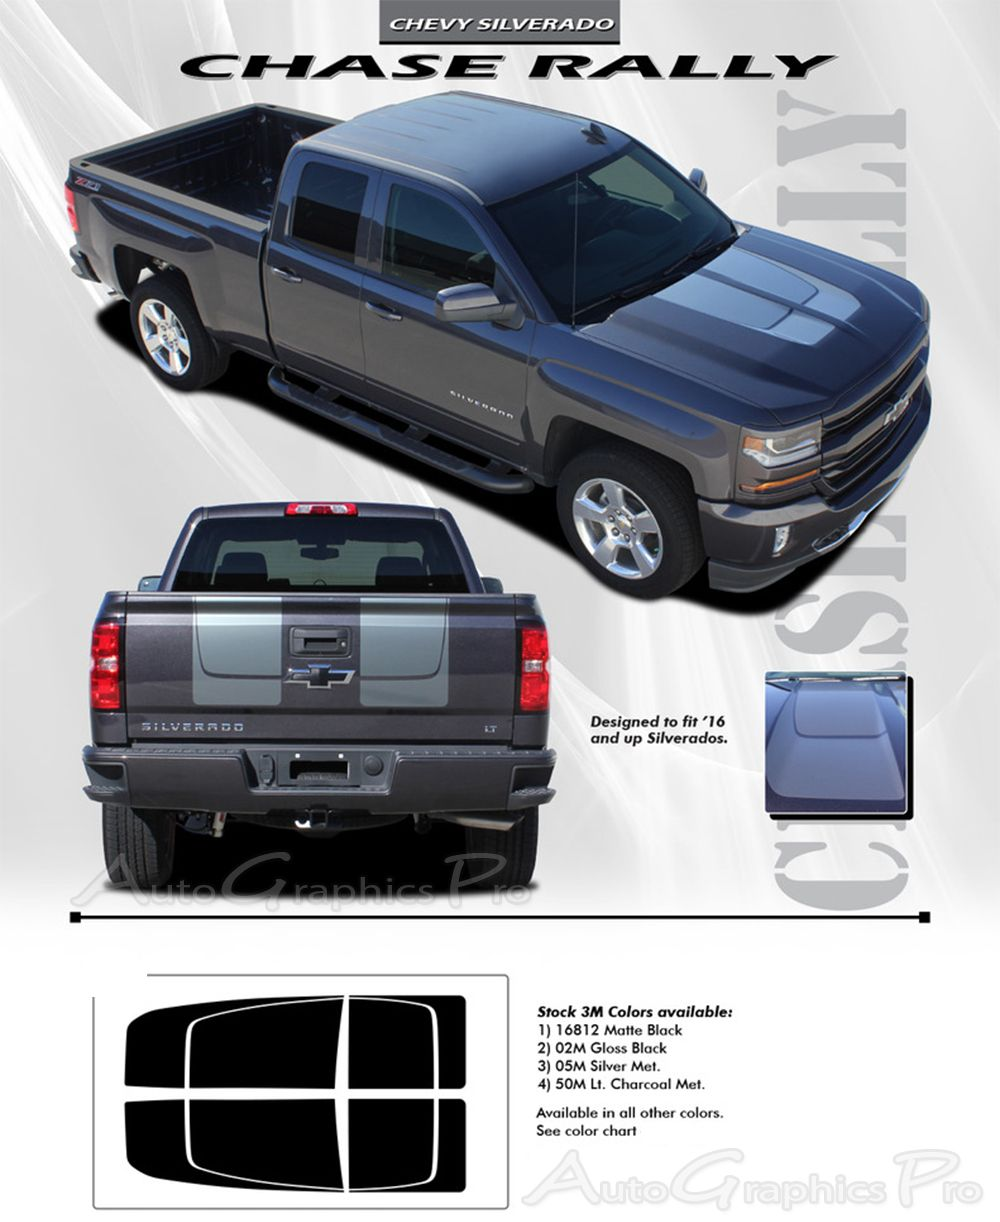 2016 2017 2018 Chevy Silverado Hood Stripes CHASE RALLY 1500 Decals